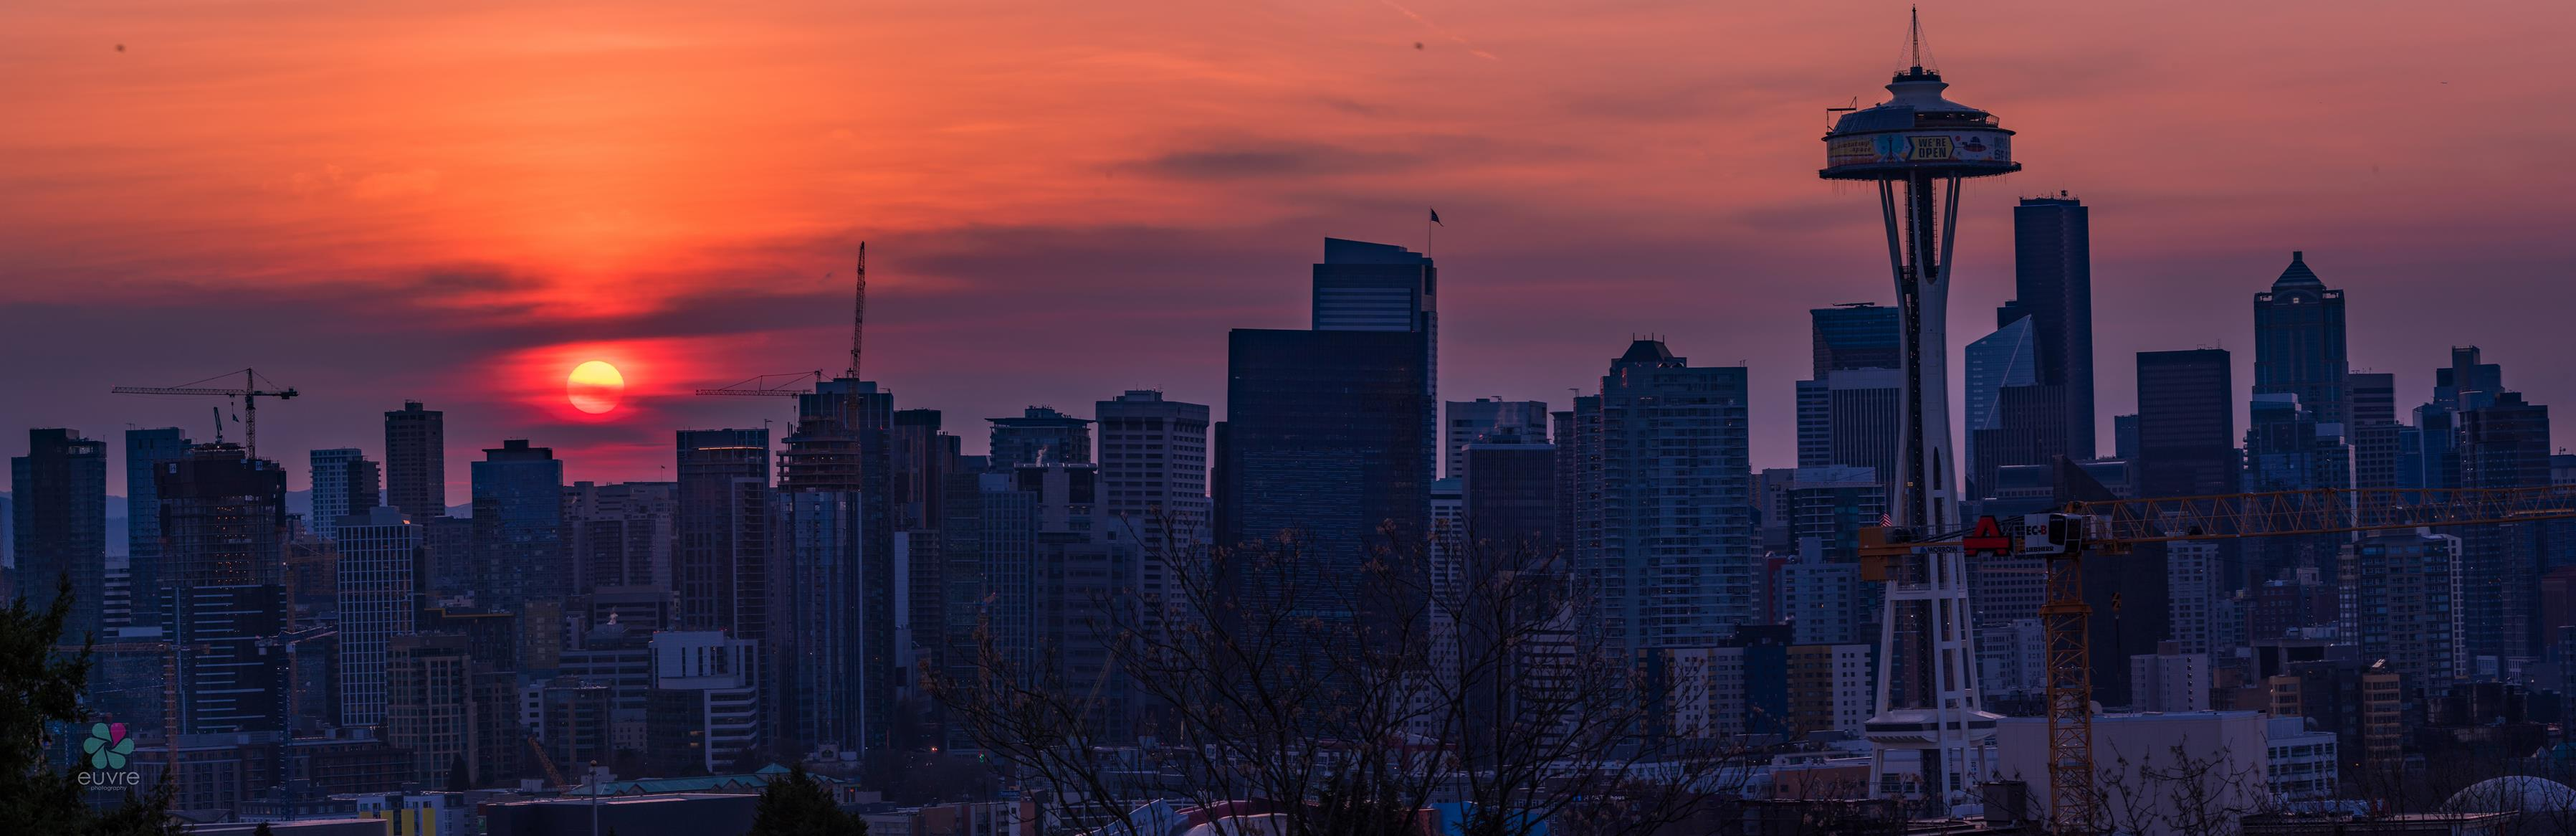 Smoky sun rises behind Seattle on Dec. 10, 2017 (Photo: Euvre Photography)